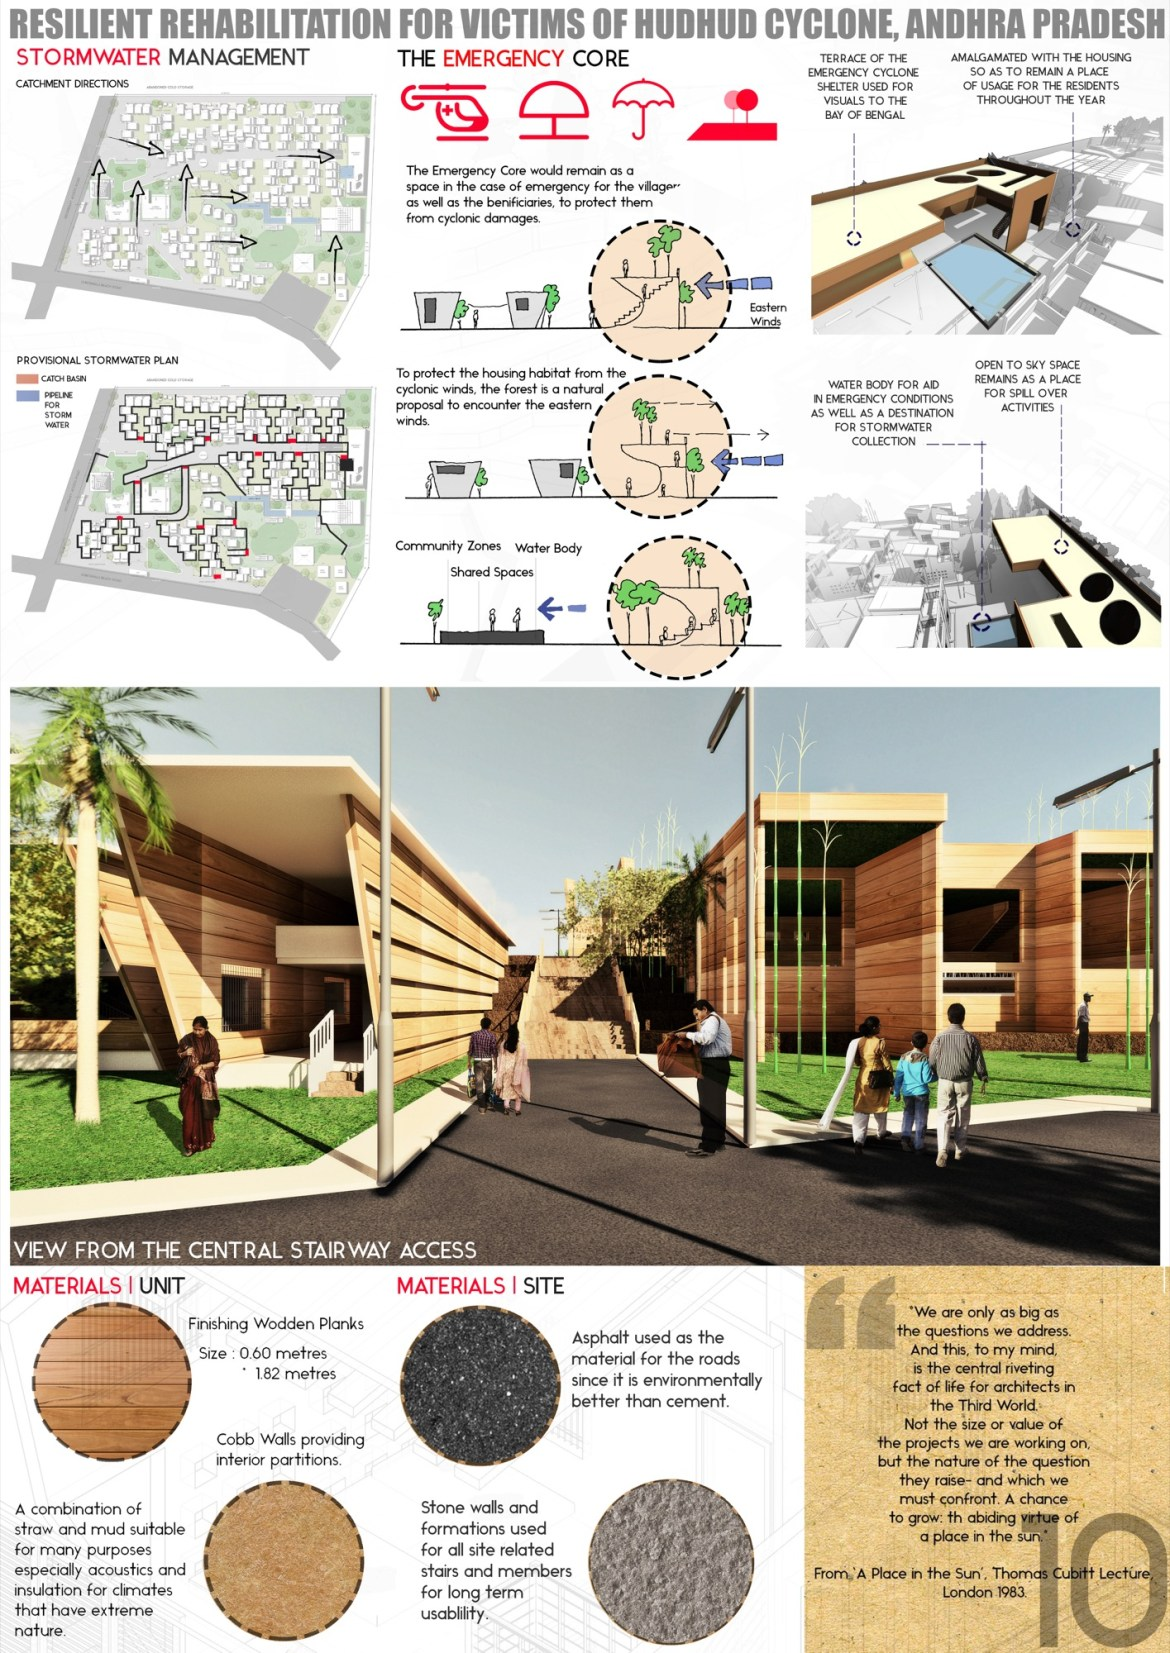 B.Arch Thesis: RESILIENT REHABILITATION FOR VICTIMS OF HUDHUD CYCLONE, ANDHRA PRADESH, by Sanand Telang 11